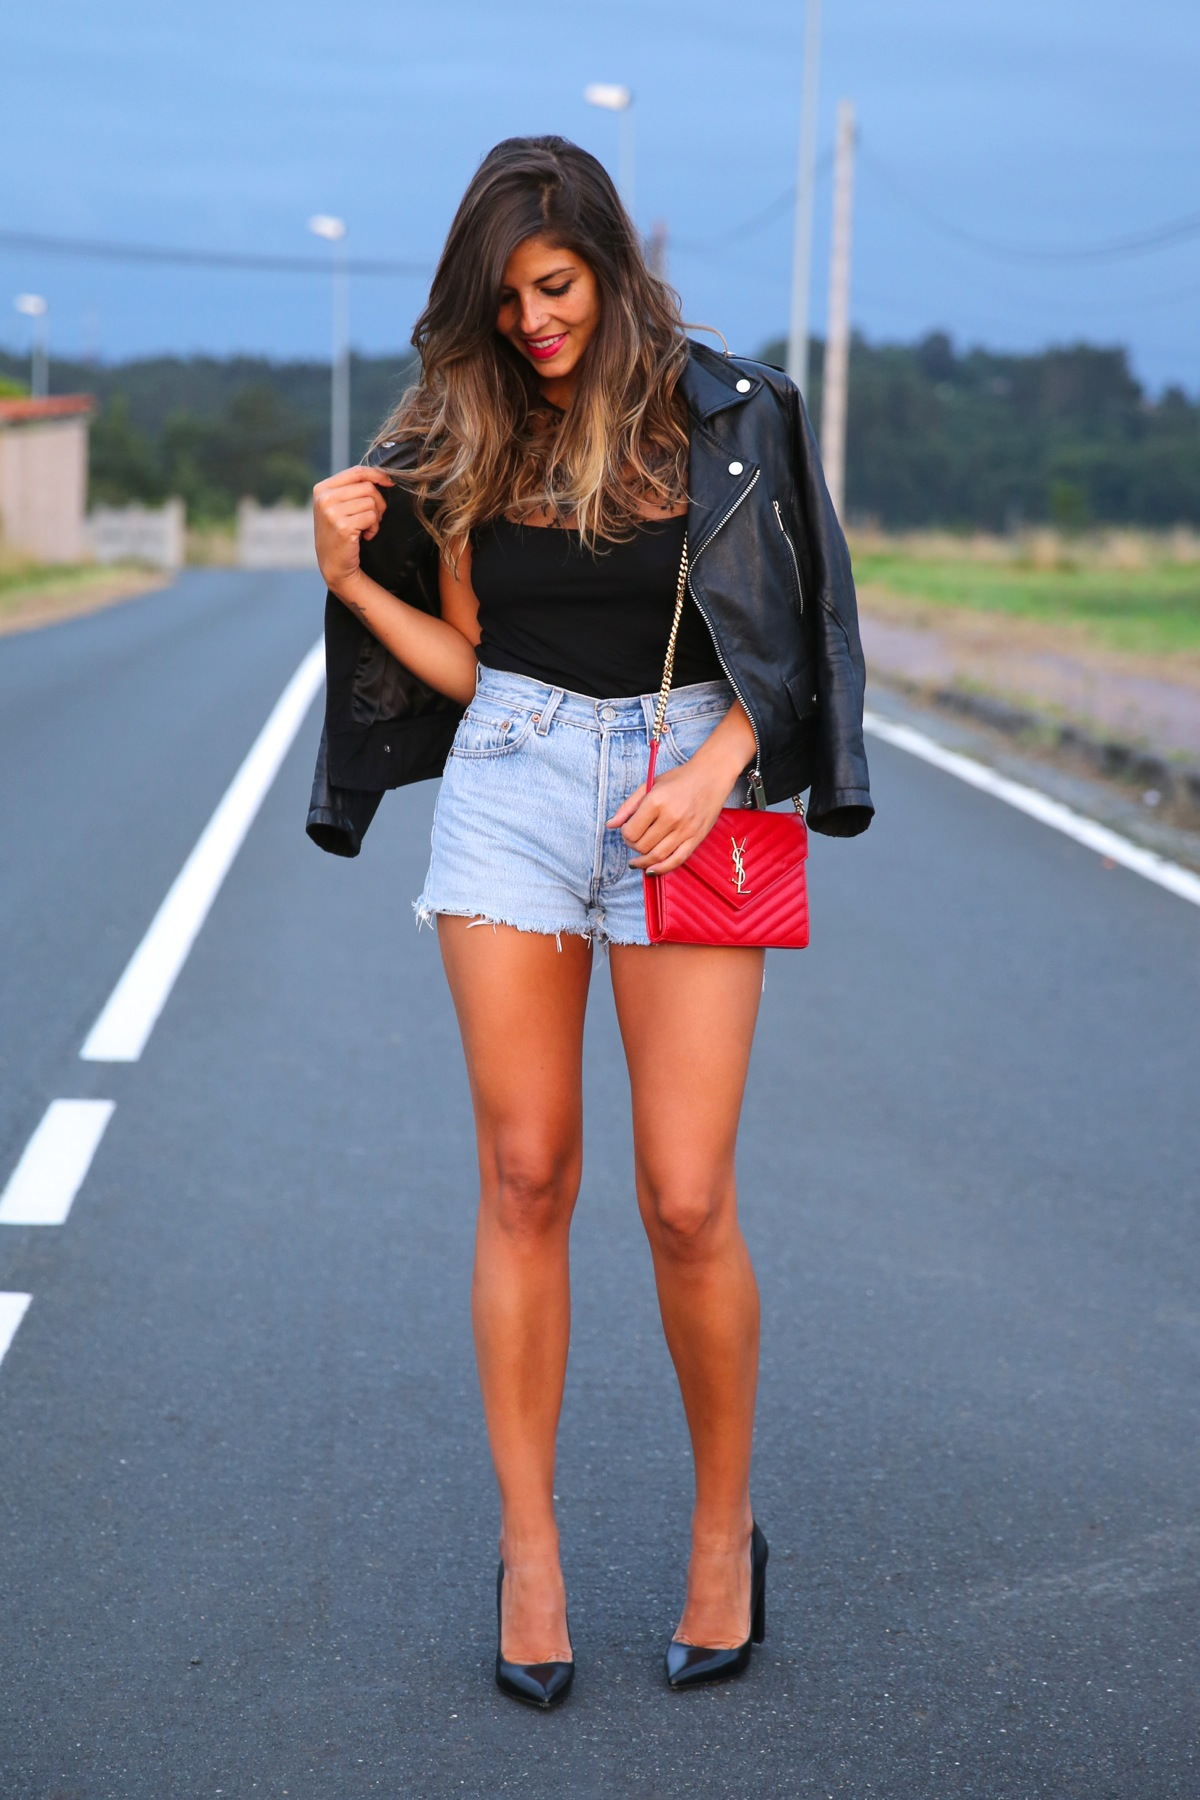 trendy_taste-look-outfit-street_style-ootd-blog-blogger-fashion_spain-moda_españa-denim_shorts-shorts_vaqueros-chaqueta_cuero-leather_jacket-ysl-saint_laurent-10